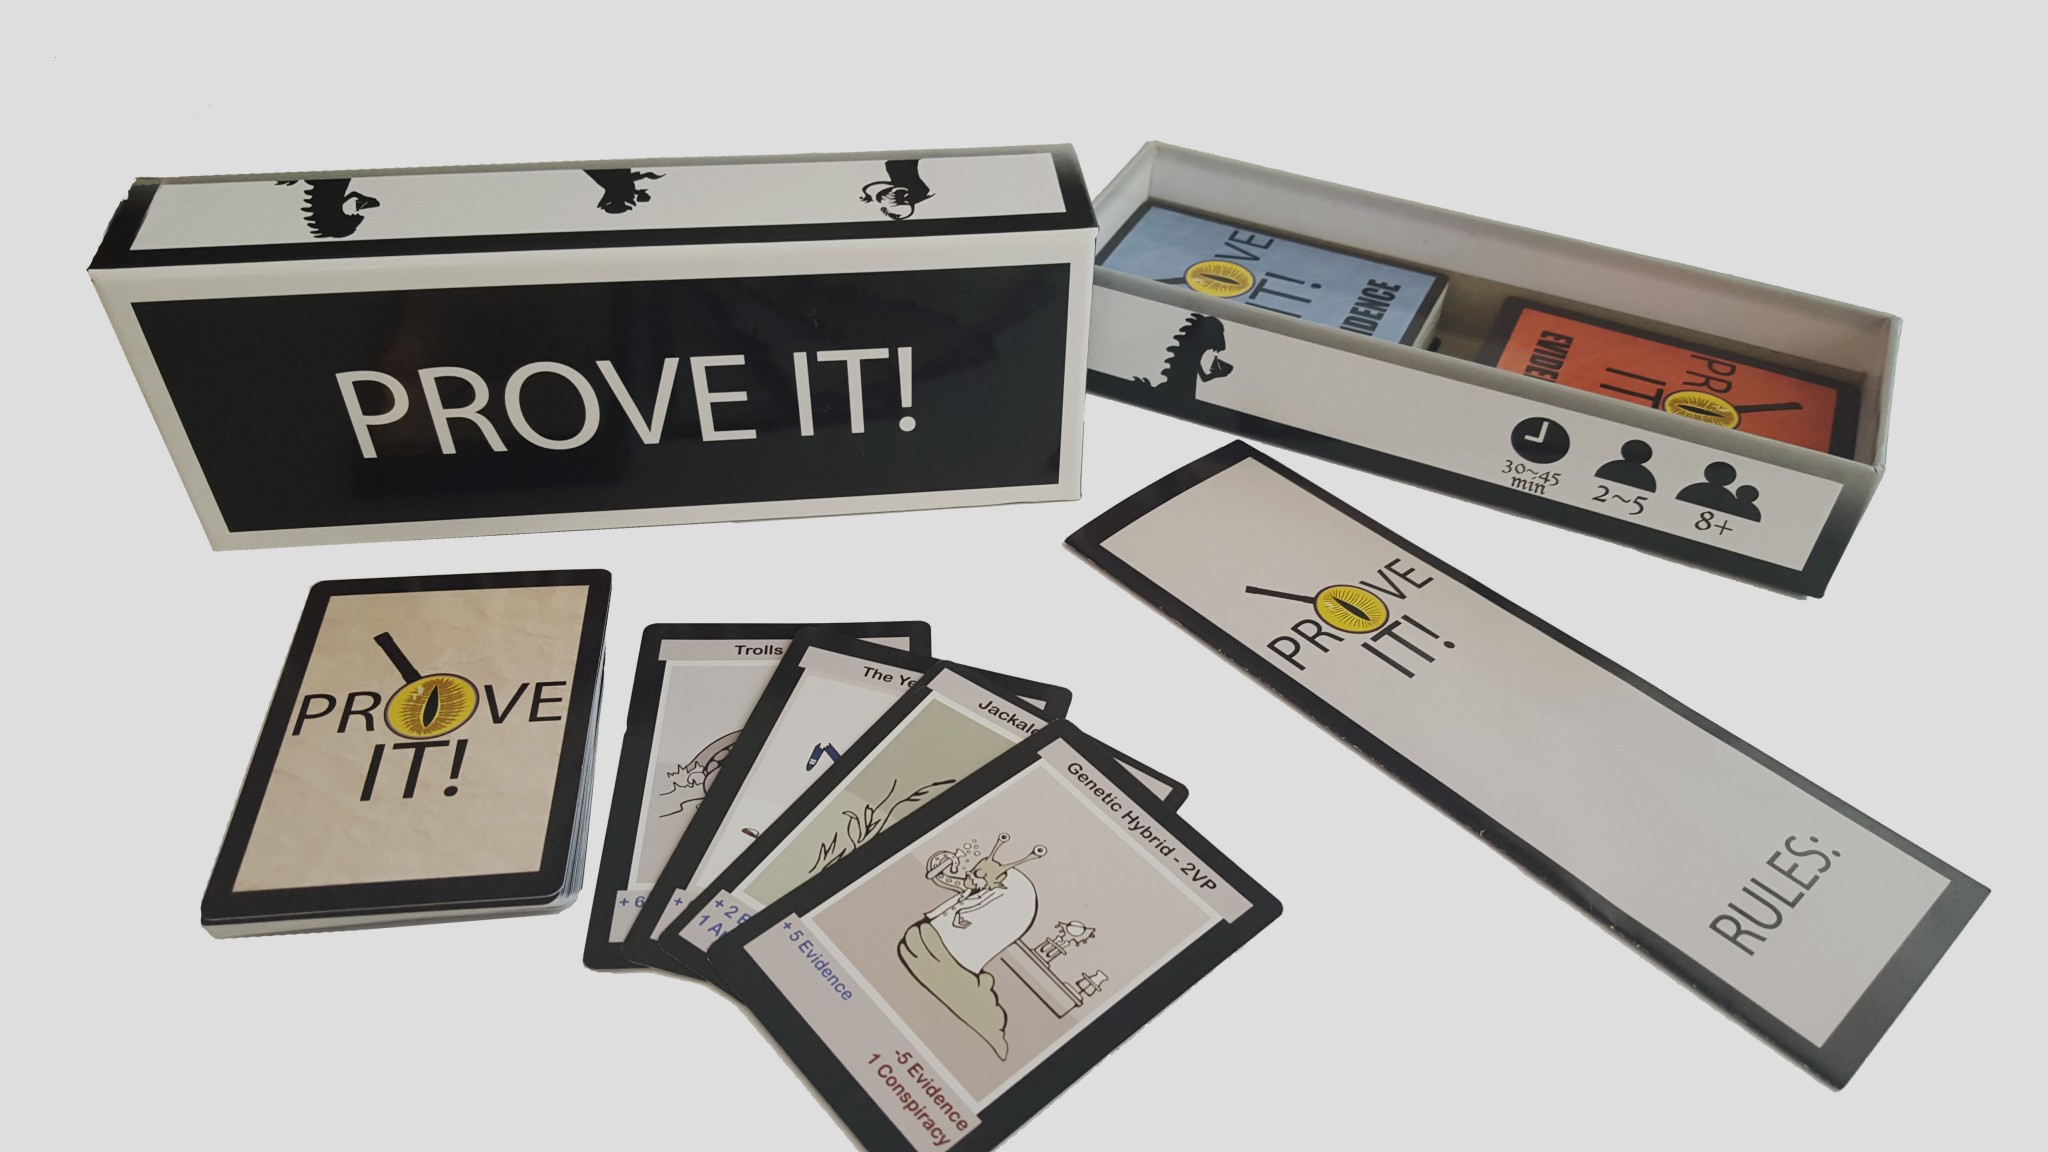 Validate Cryptozoology with Safe Haven Games' 'Prove It!'